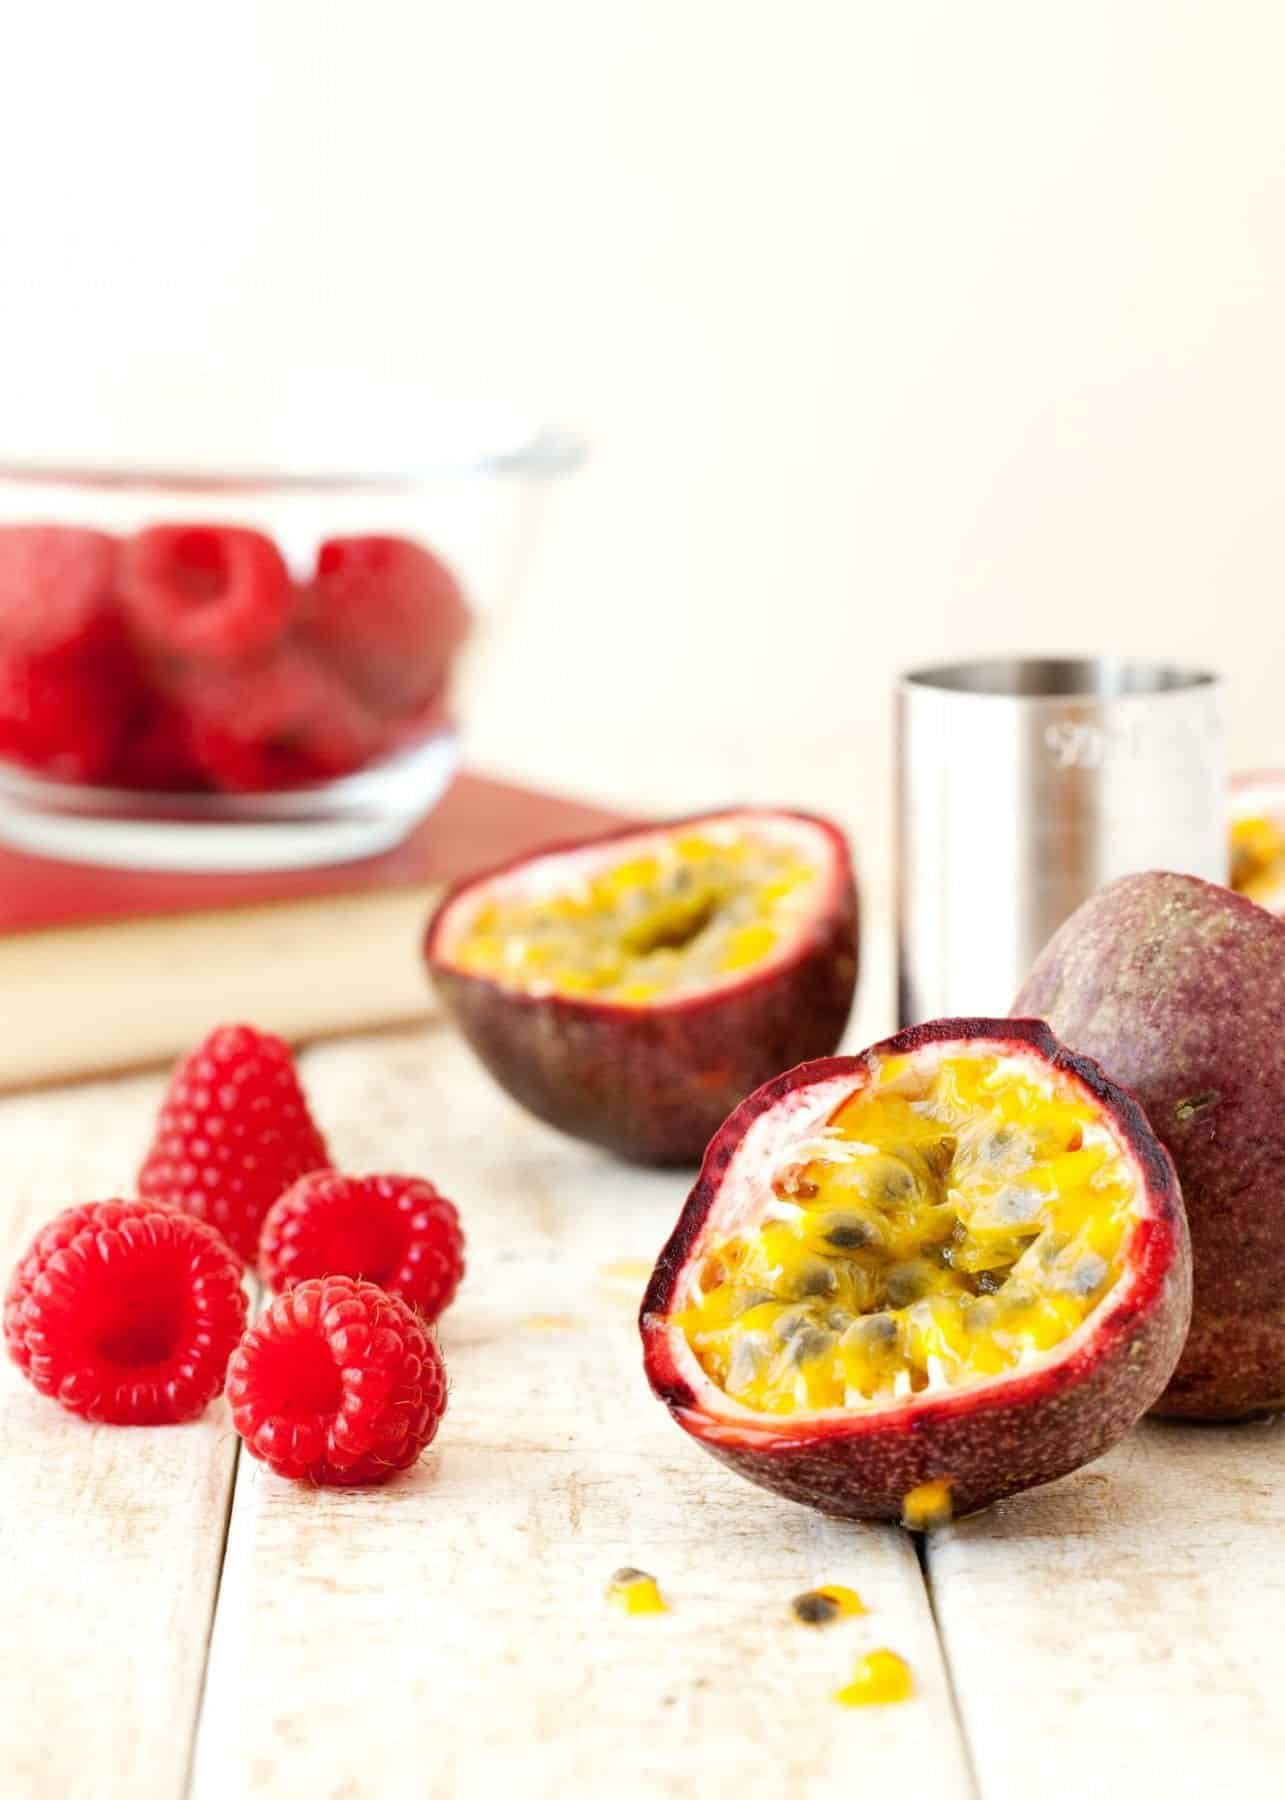 Fresh passionfruit and raspberries on a worktop